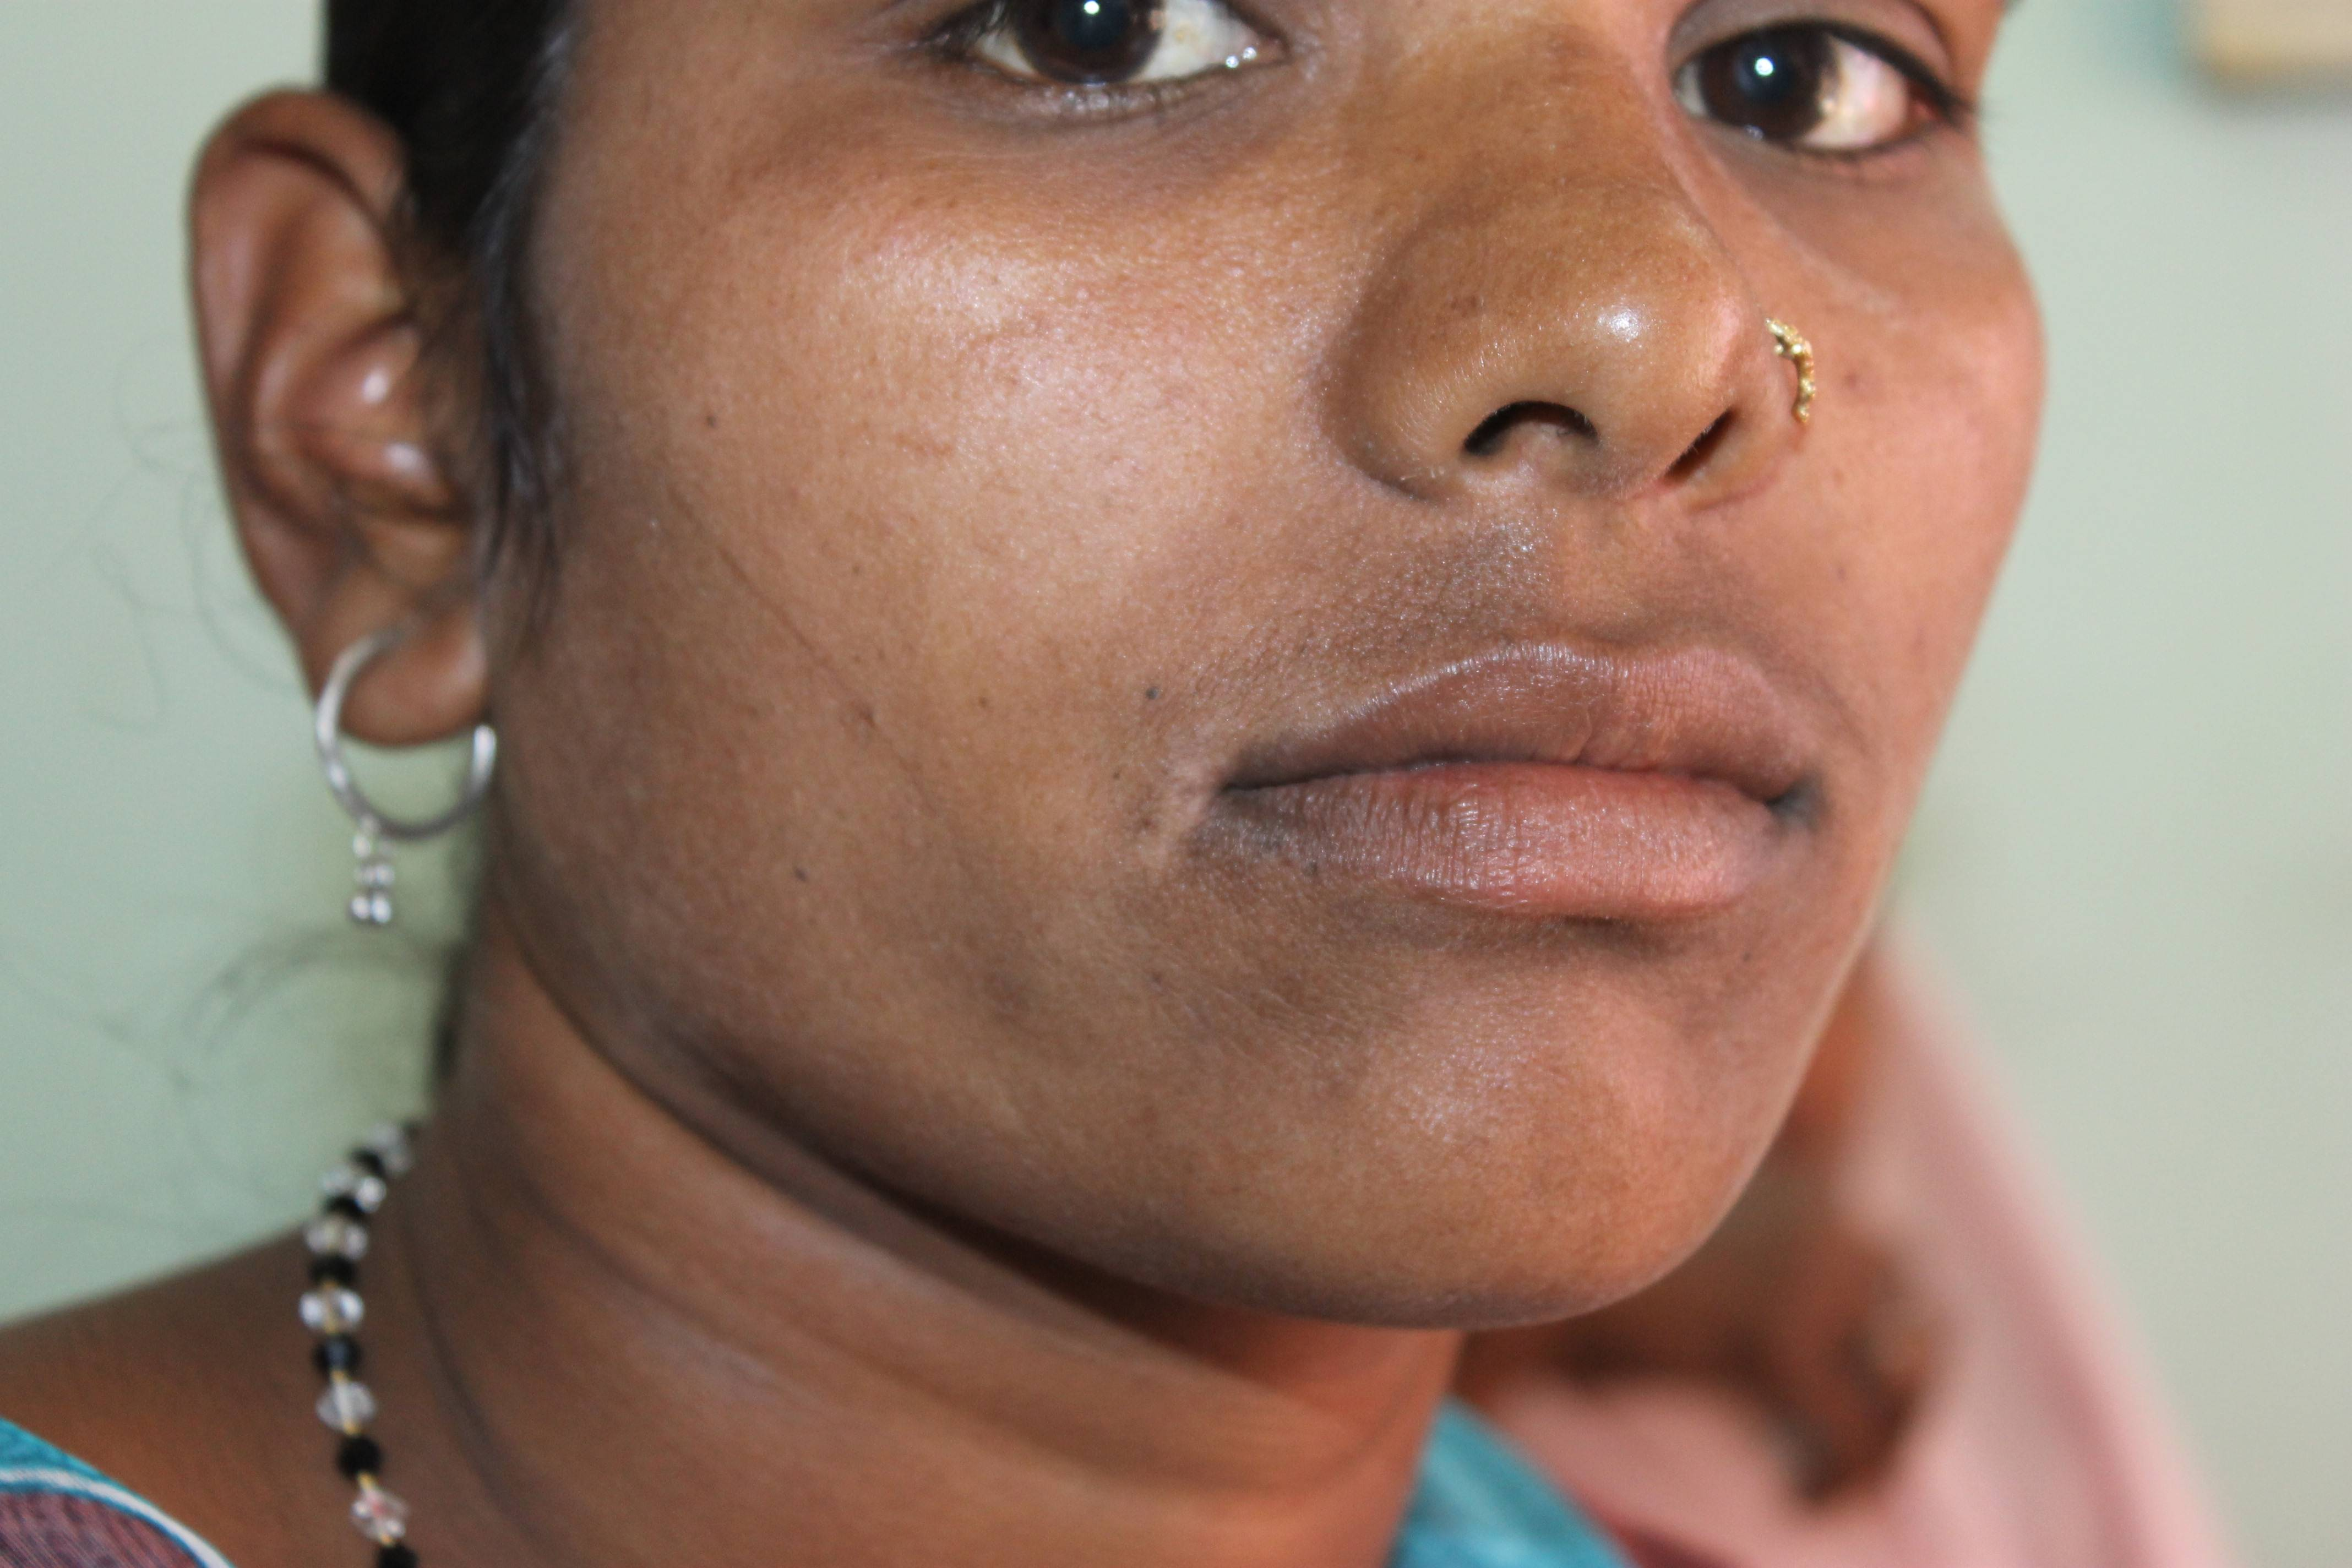 Miraculous Improvement And Recovery From Vitiligo With Homeopathy Case Study